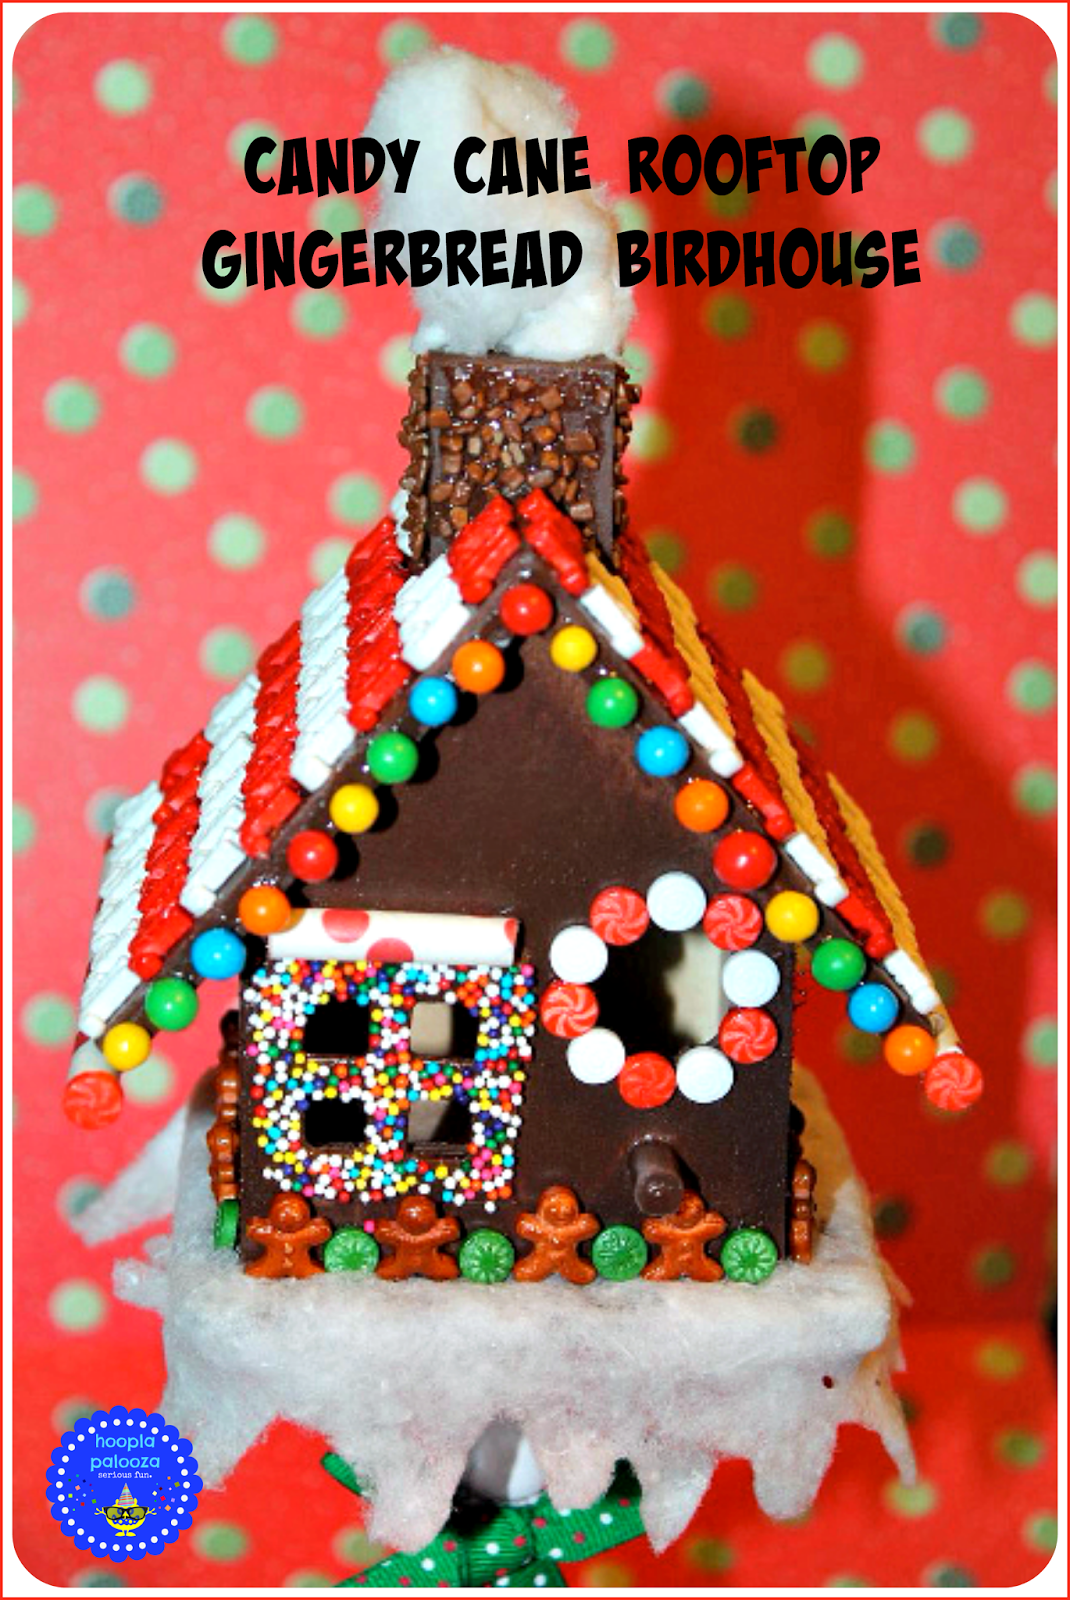 Candy Cane Rooftop Gingerbread Birdhouses